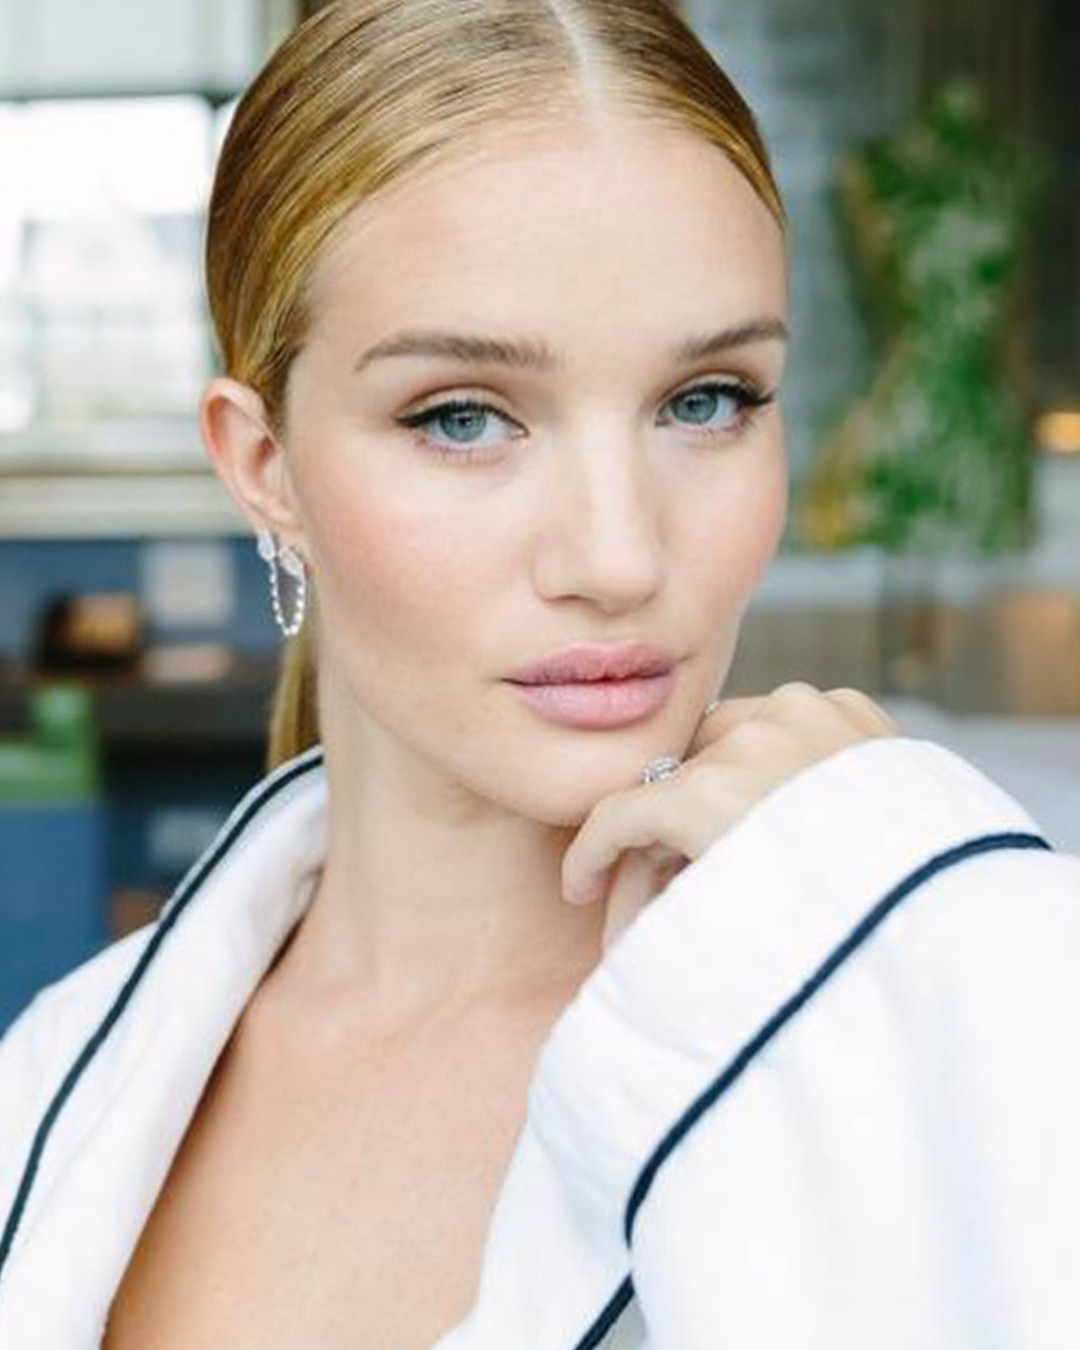 Rosie Huntington-Whiteley Rosie Huntington-Whiteley new foto